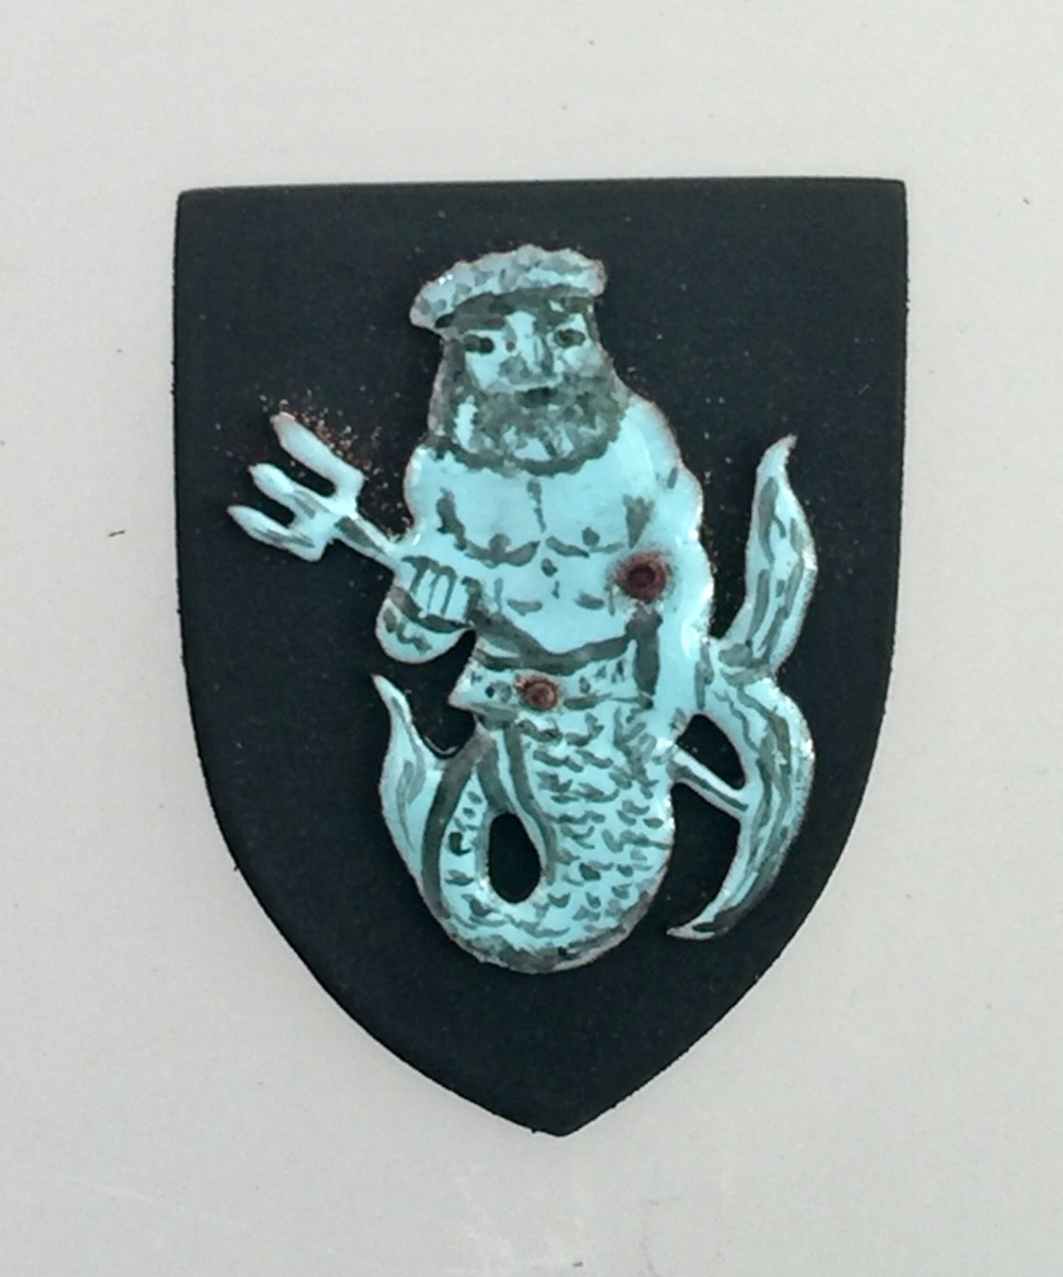 Blue Merman/Poseidon on Black Shield